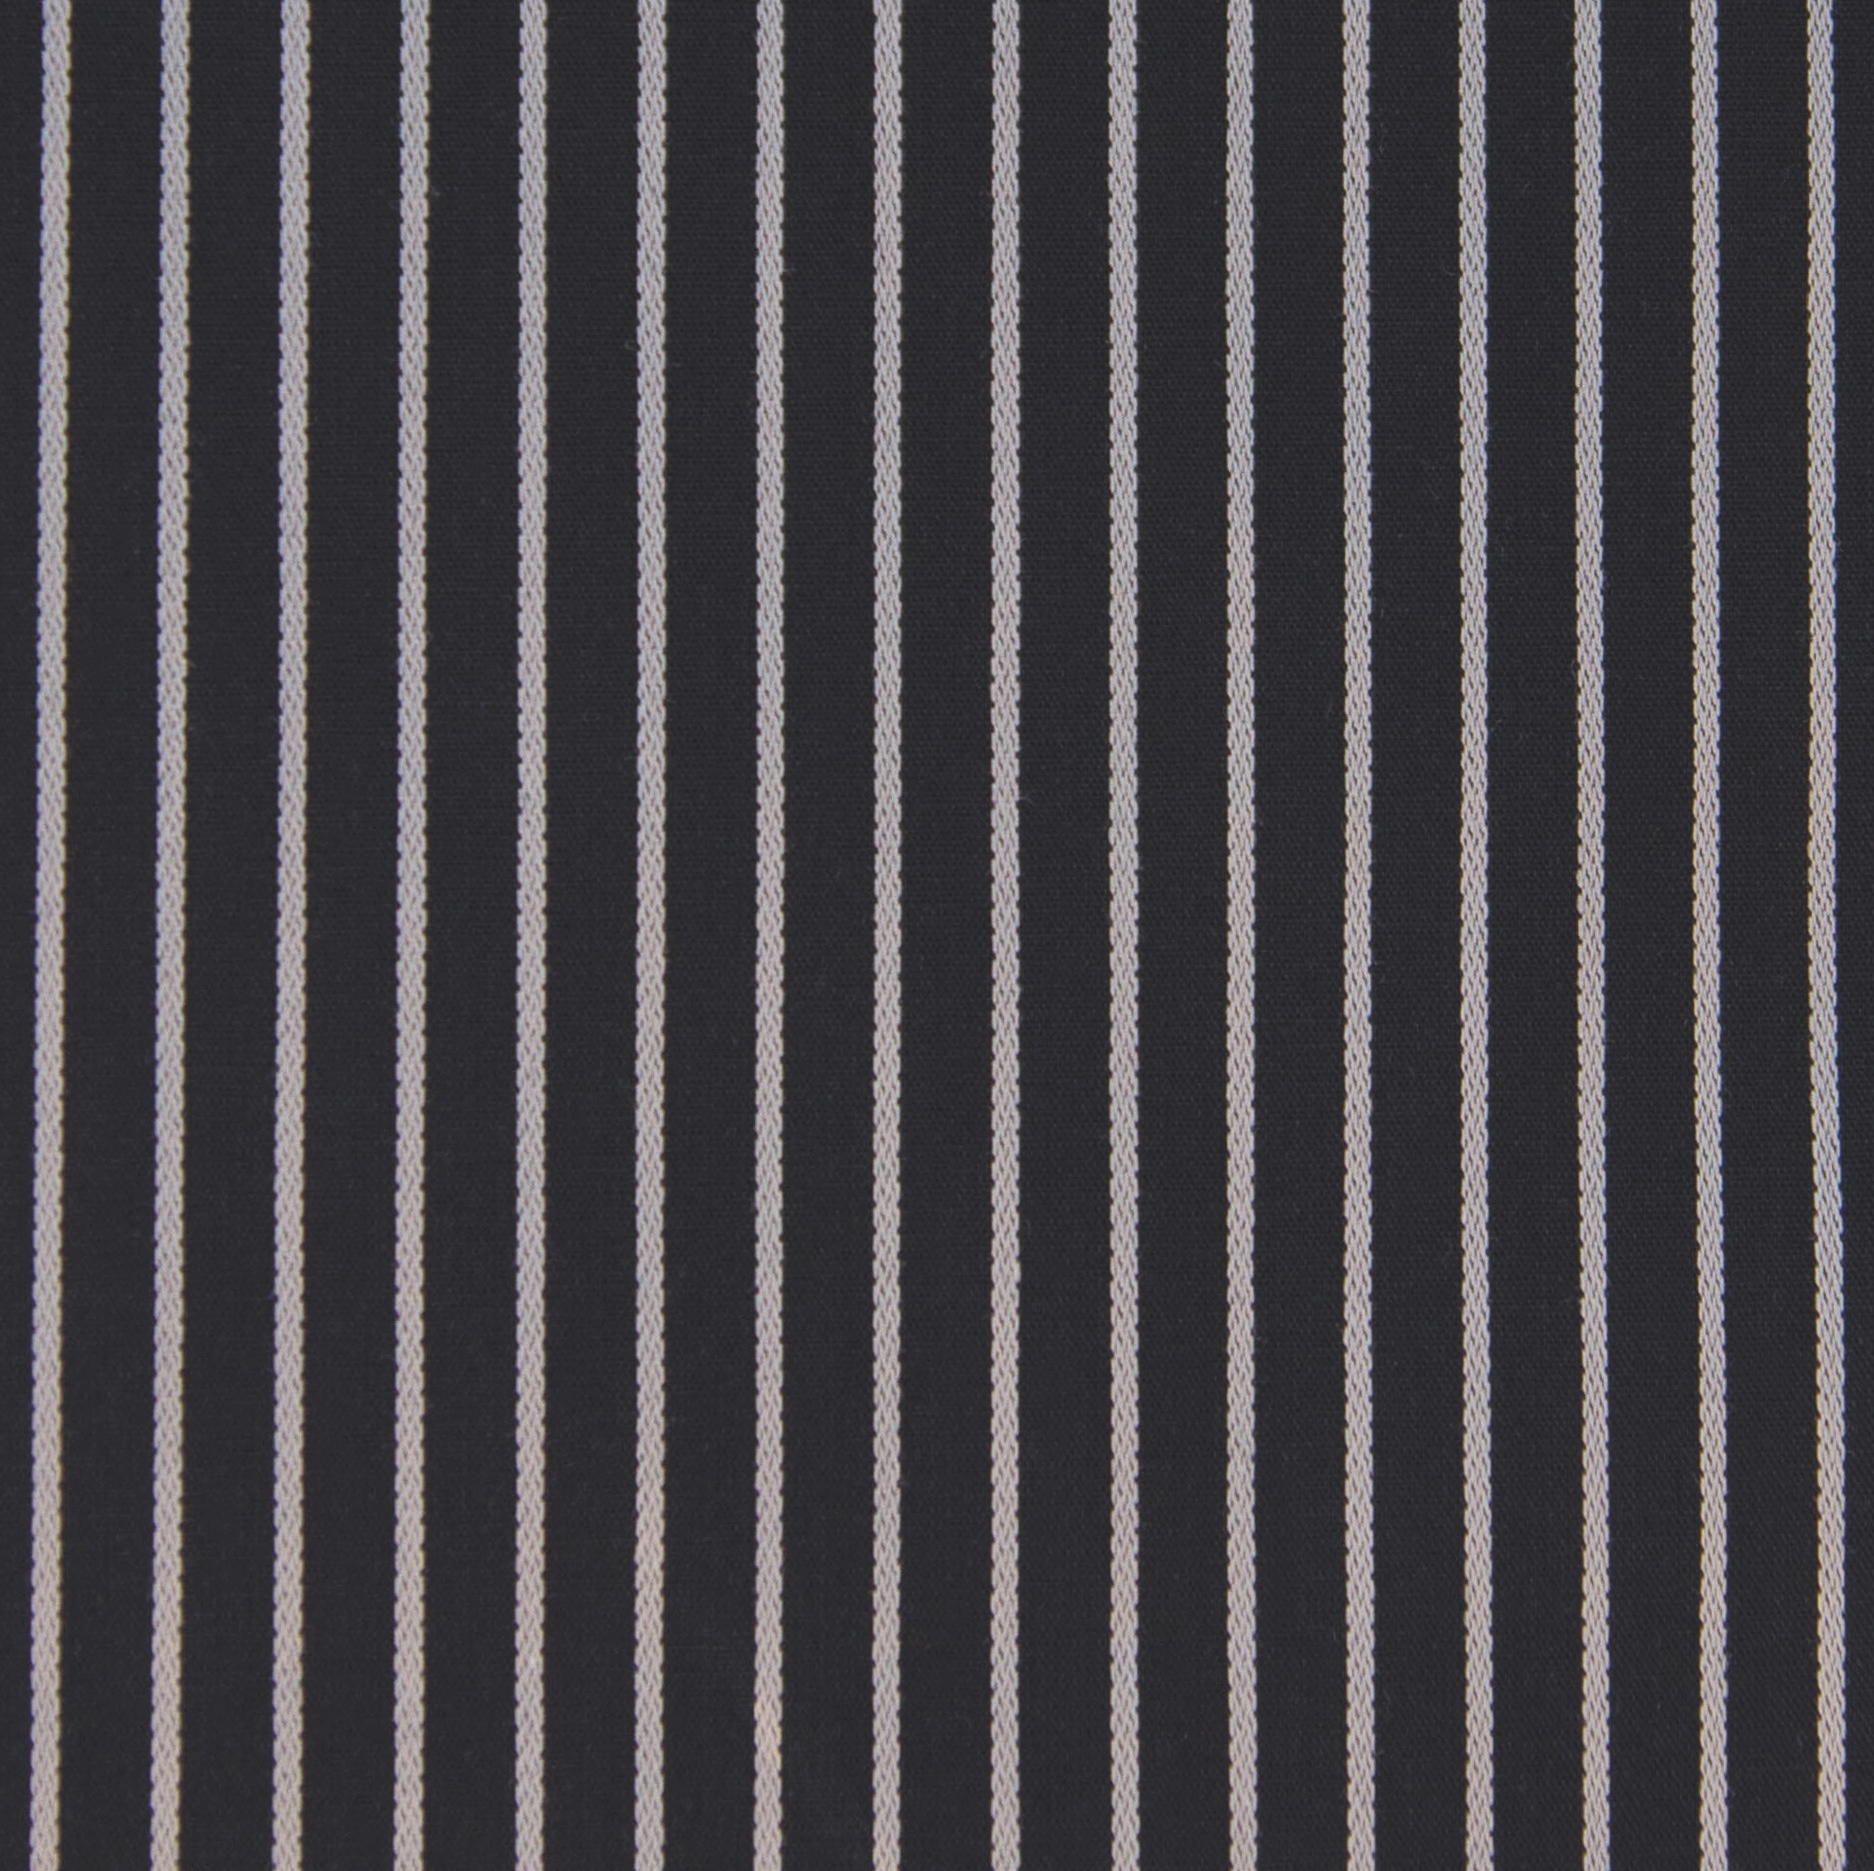 Buy tailor made shirts online - Presidents Range - Black with Grey Stripe